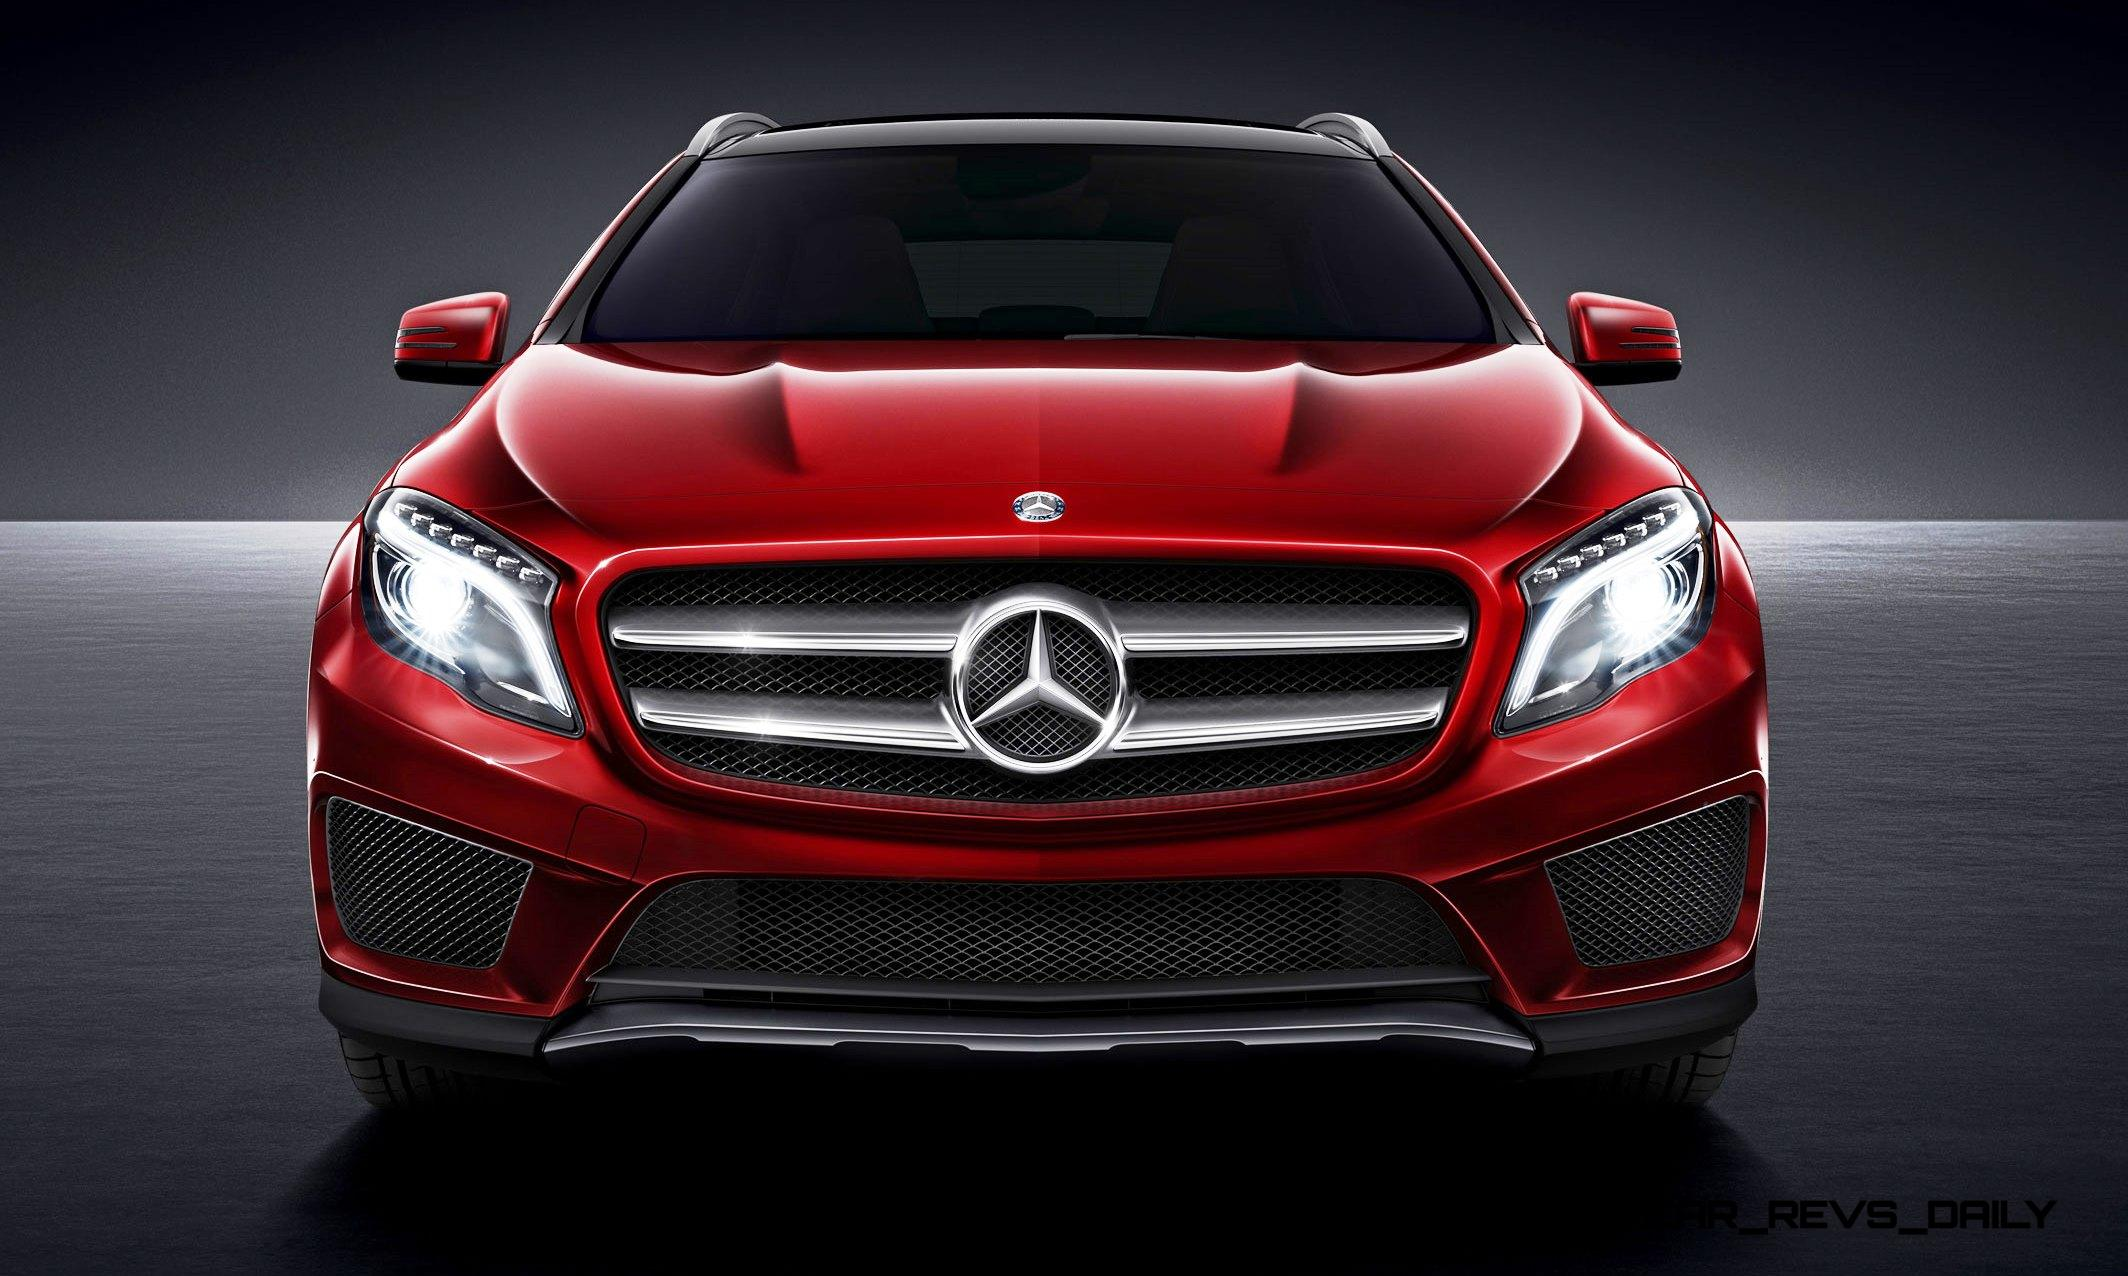 Benz Gla 250 >> First Drive Review - 2016 Mercedes-Benz GLA250 4MATIC